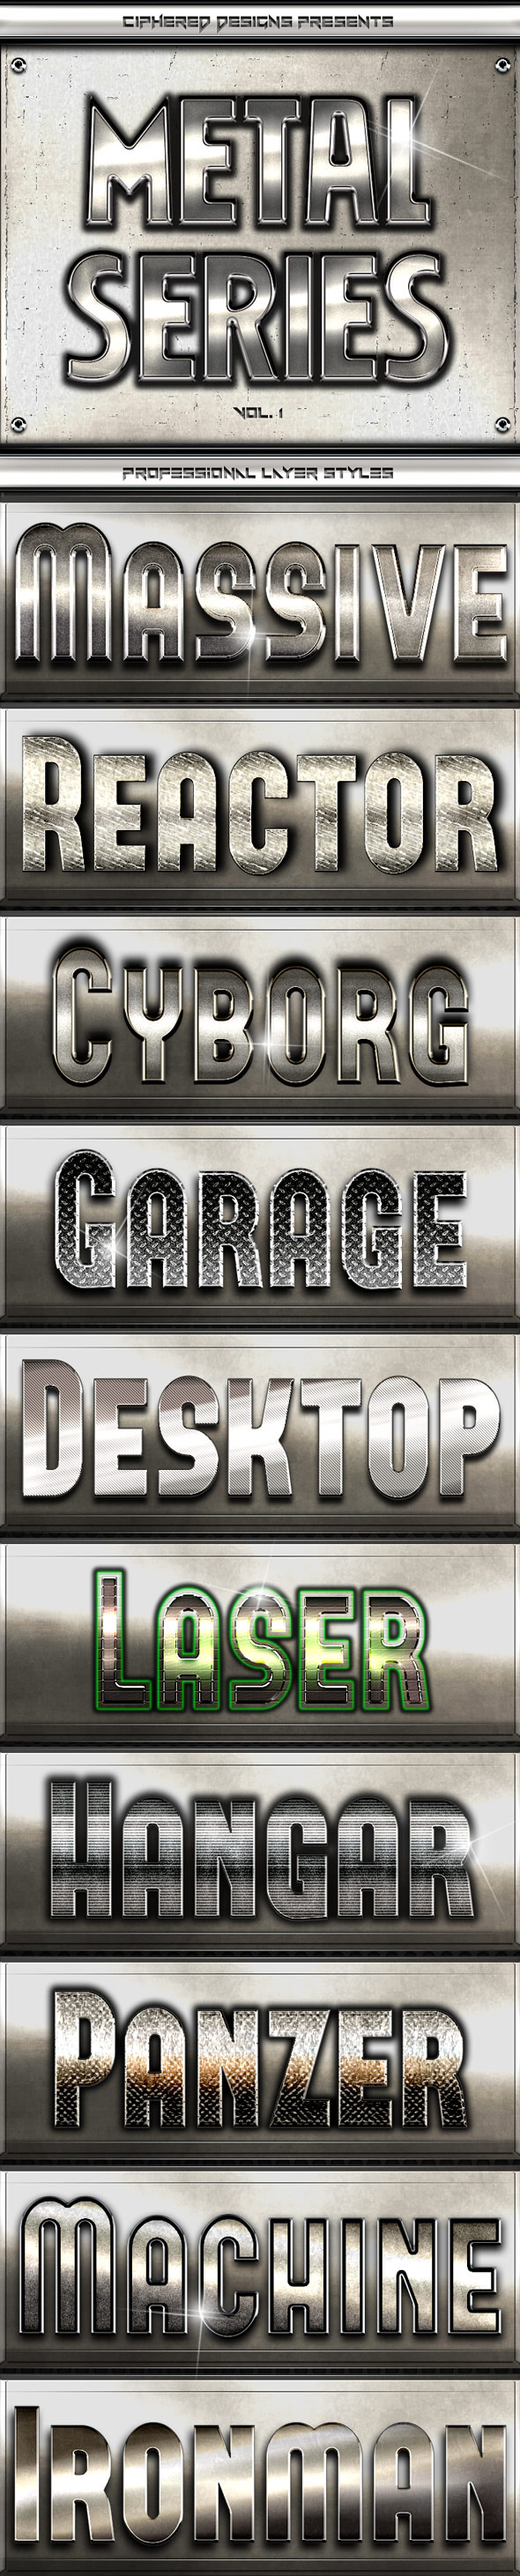 Metal Series - Professional Layer Styles - Text Effects Styles